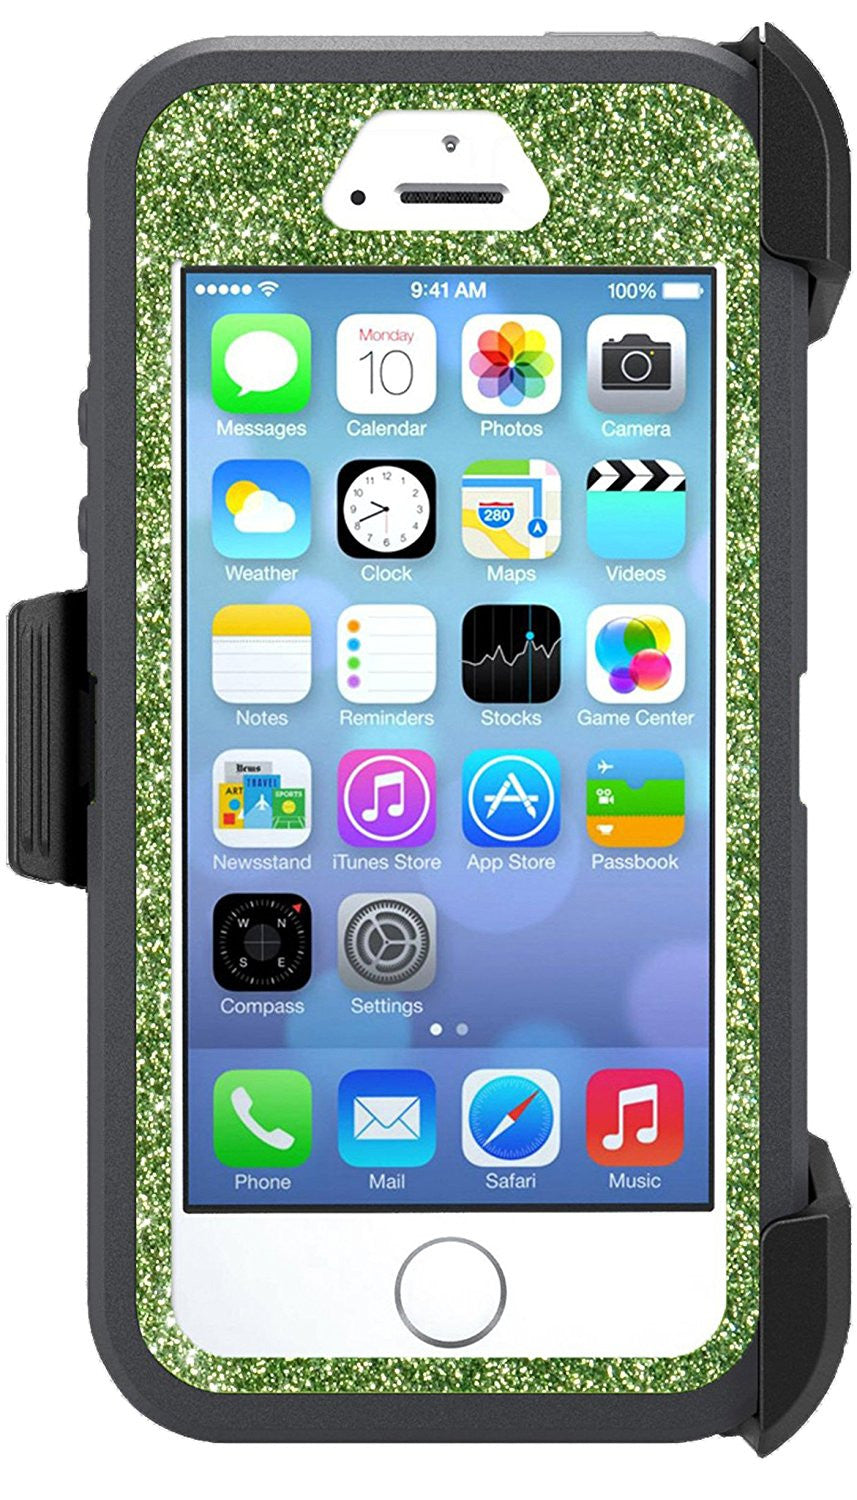 sale retailer 0c127 007e9 OtterBox Defender Series Case for iPhone 5s - Custom Glitter Case for  iPhone 5s - Dark Grey/Lime Green